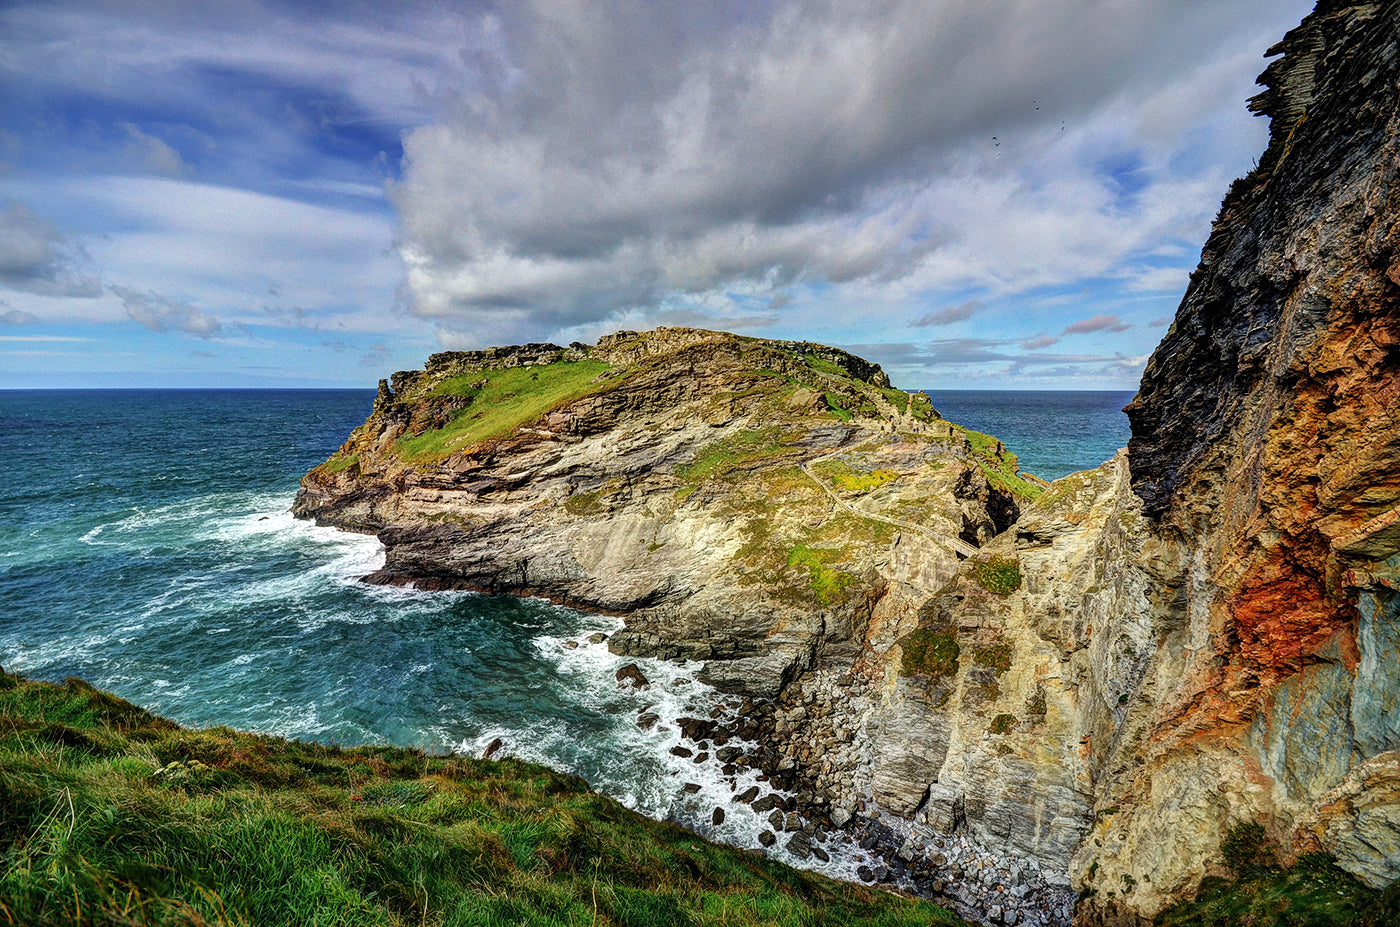 Rough cliffs in front of the South West Coast in England along the South West Coast Path. (Photo: Baz Richardson)